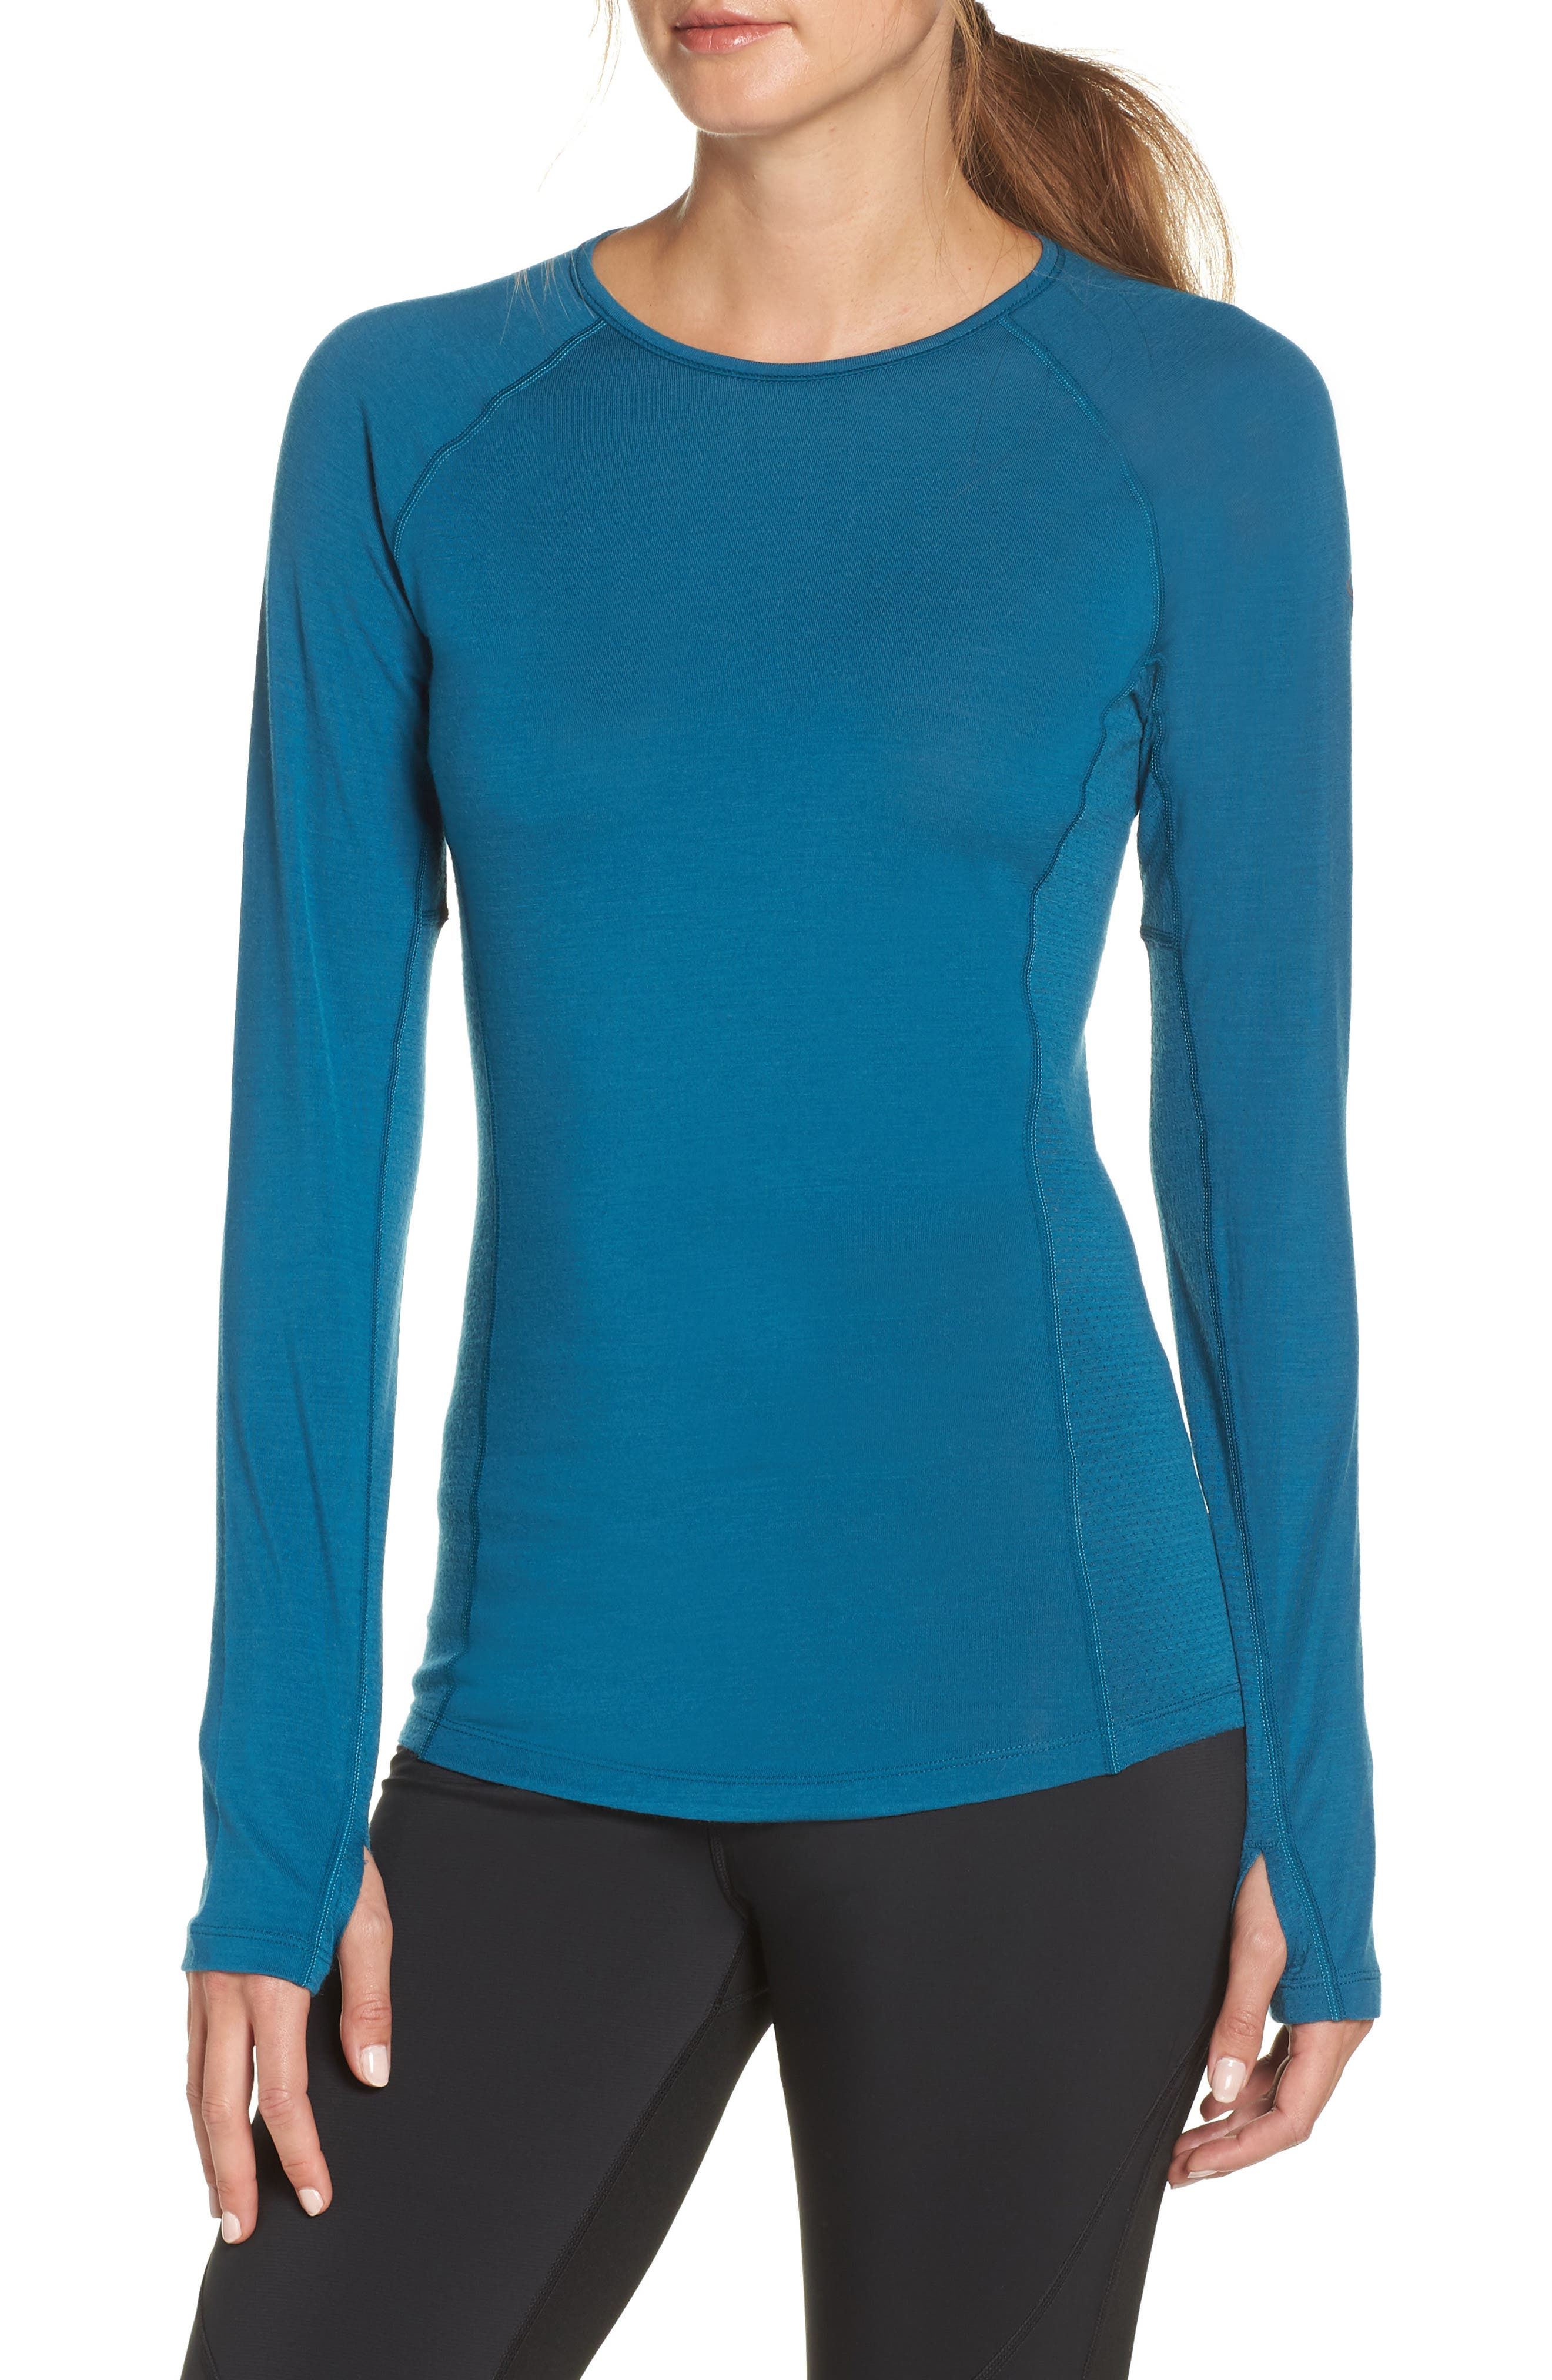 BodyfitZONE<sup>™</sup> 150 Zone Merino Wool Blend Base Layer Tee,                         Main,                         color, KING FISCHER/ ARCTIC TEAL